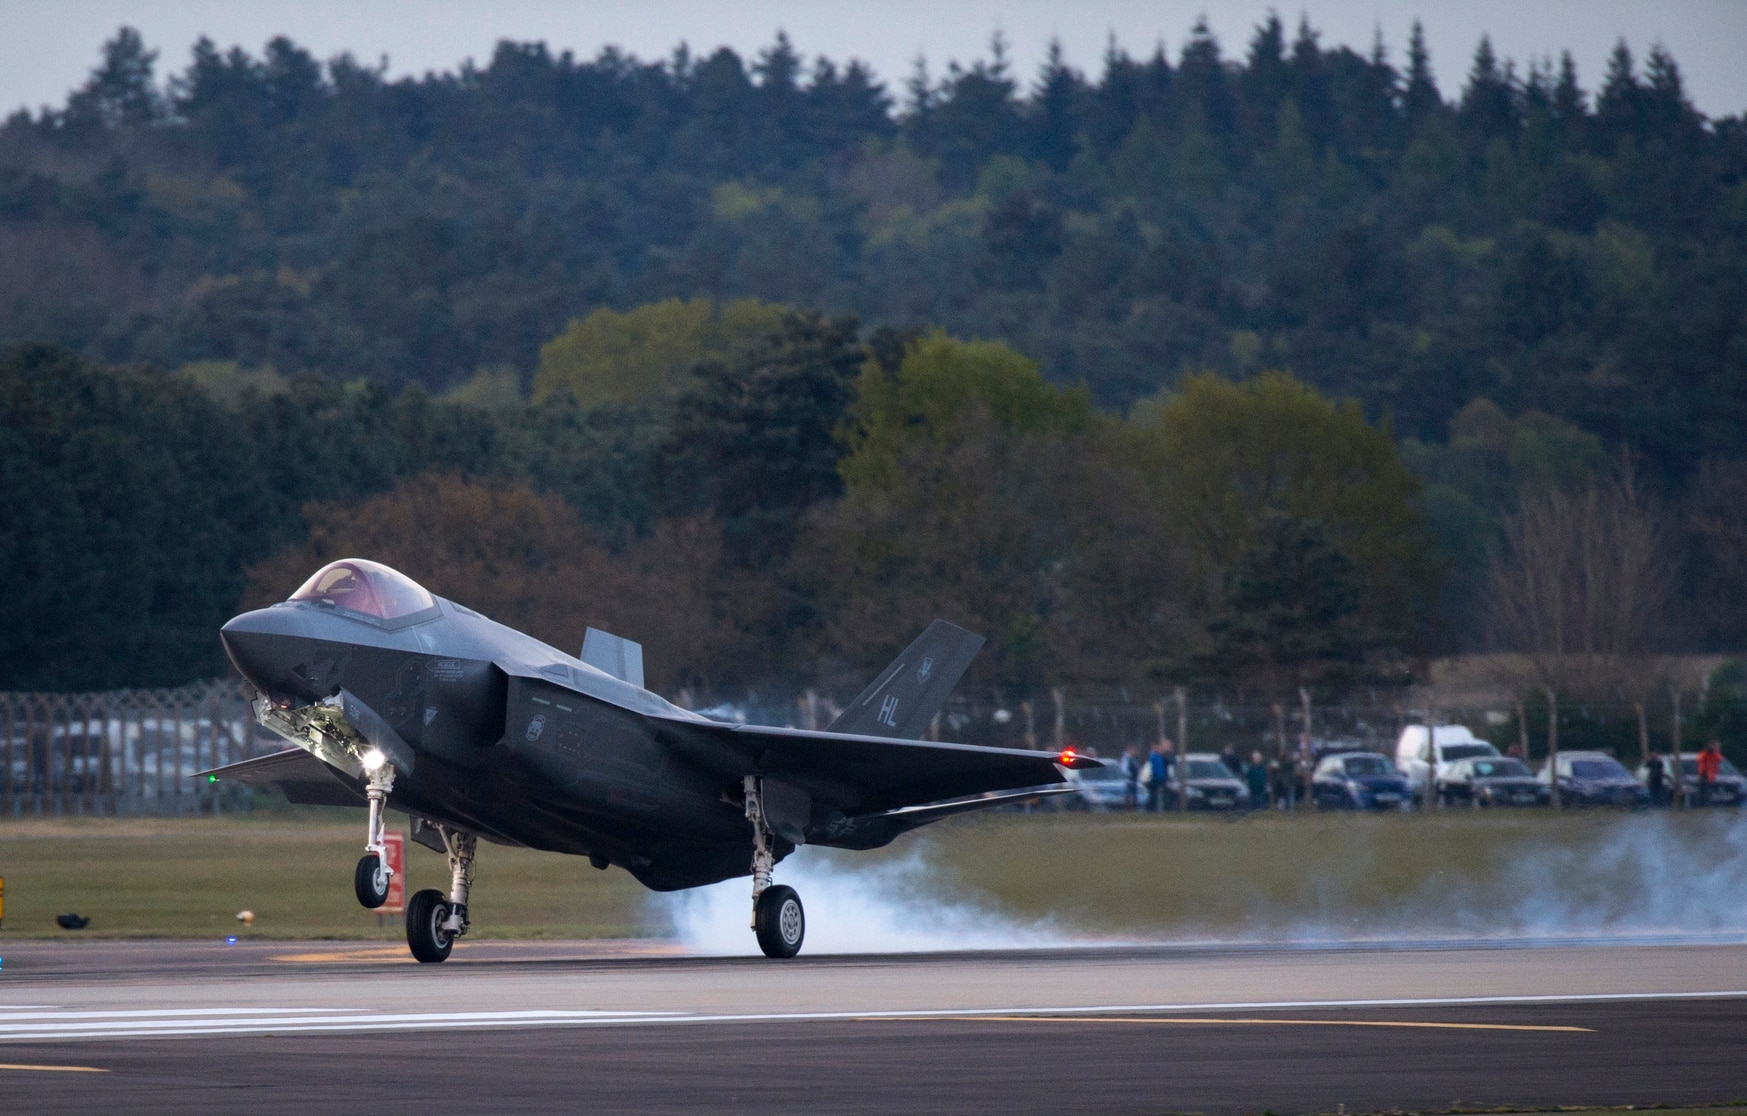 Lockheed Martin's top program in fiscal 2019 was the F-35 Joint Strike Fighter. The firm's largest customer was the United States, followed by Saudi Arabia. (Staff Sgt. Emerson Nuñez/U.S. Air Force)